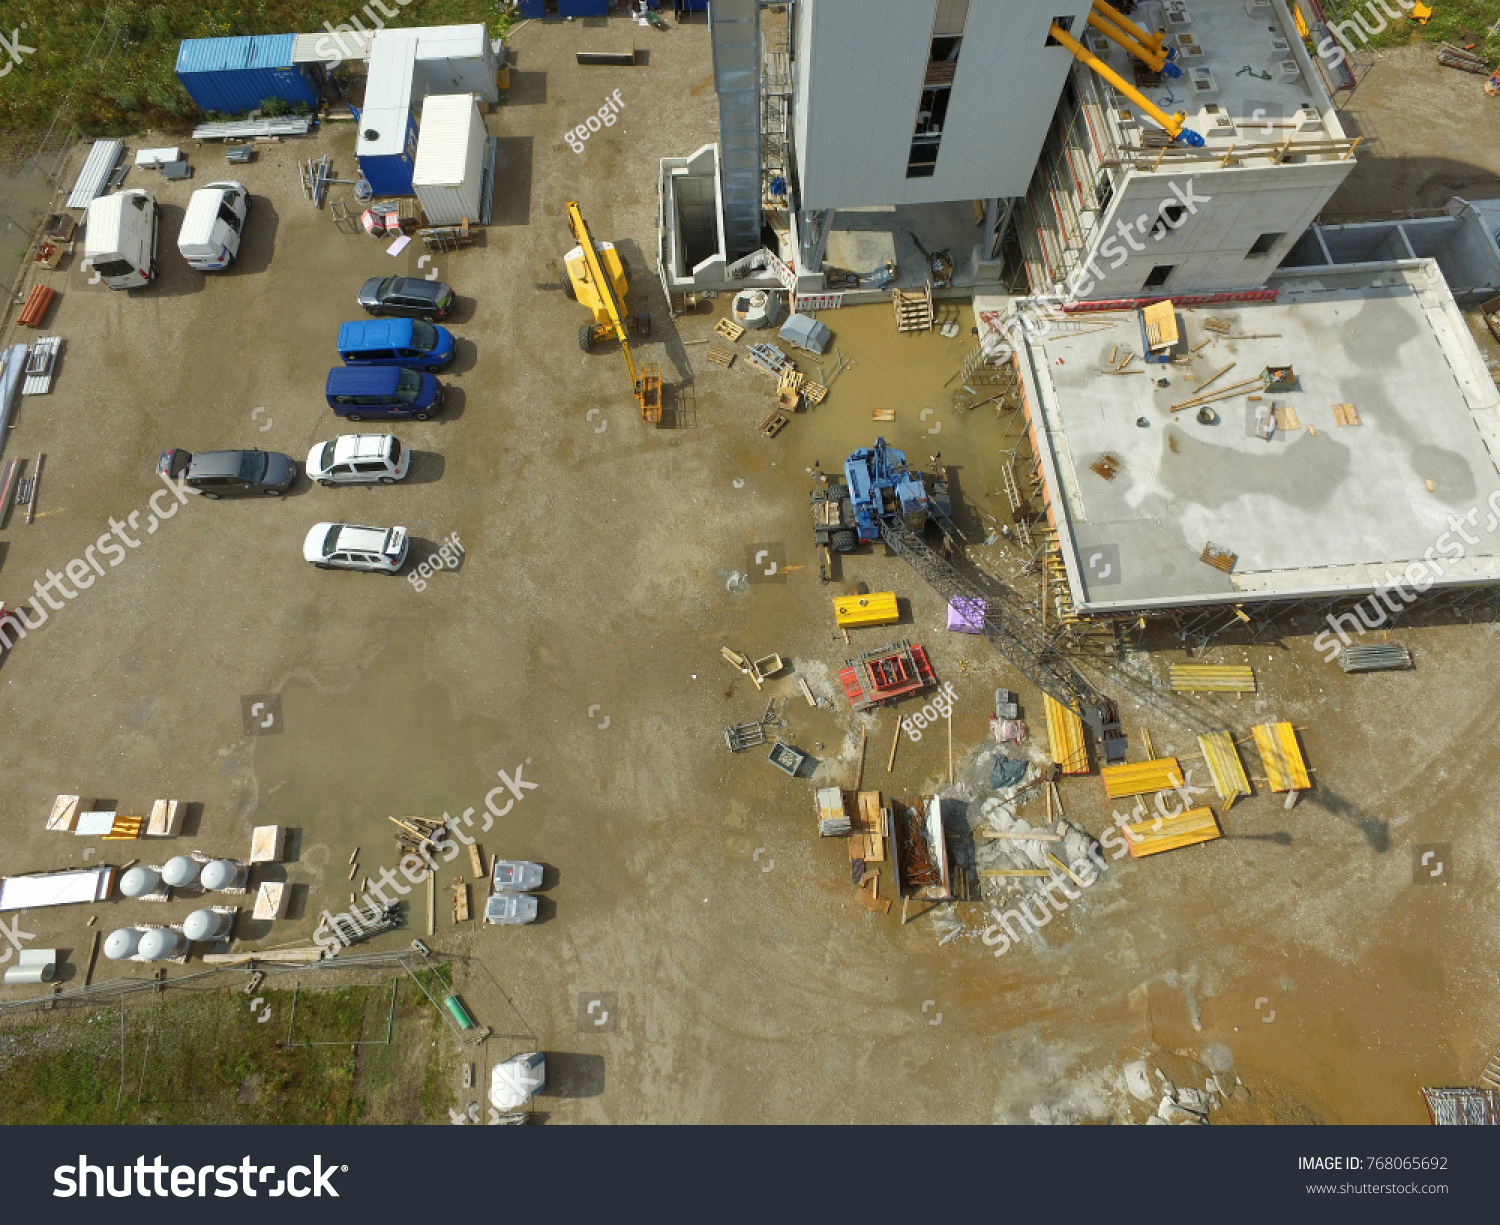 Vertical Aerial Photograph Taken From A Large Construction Site At 50 Meters Height With The Drone